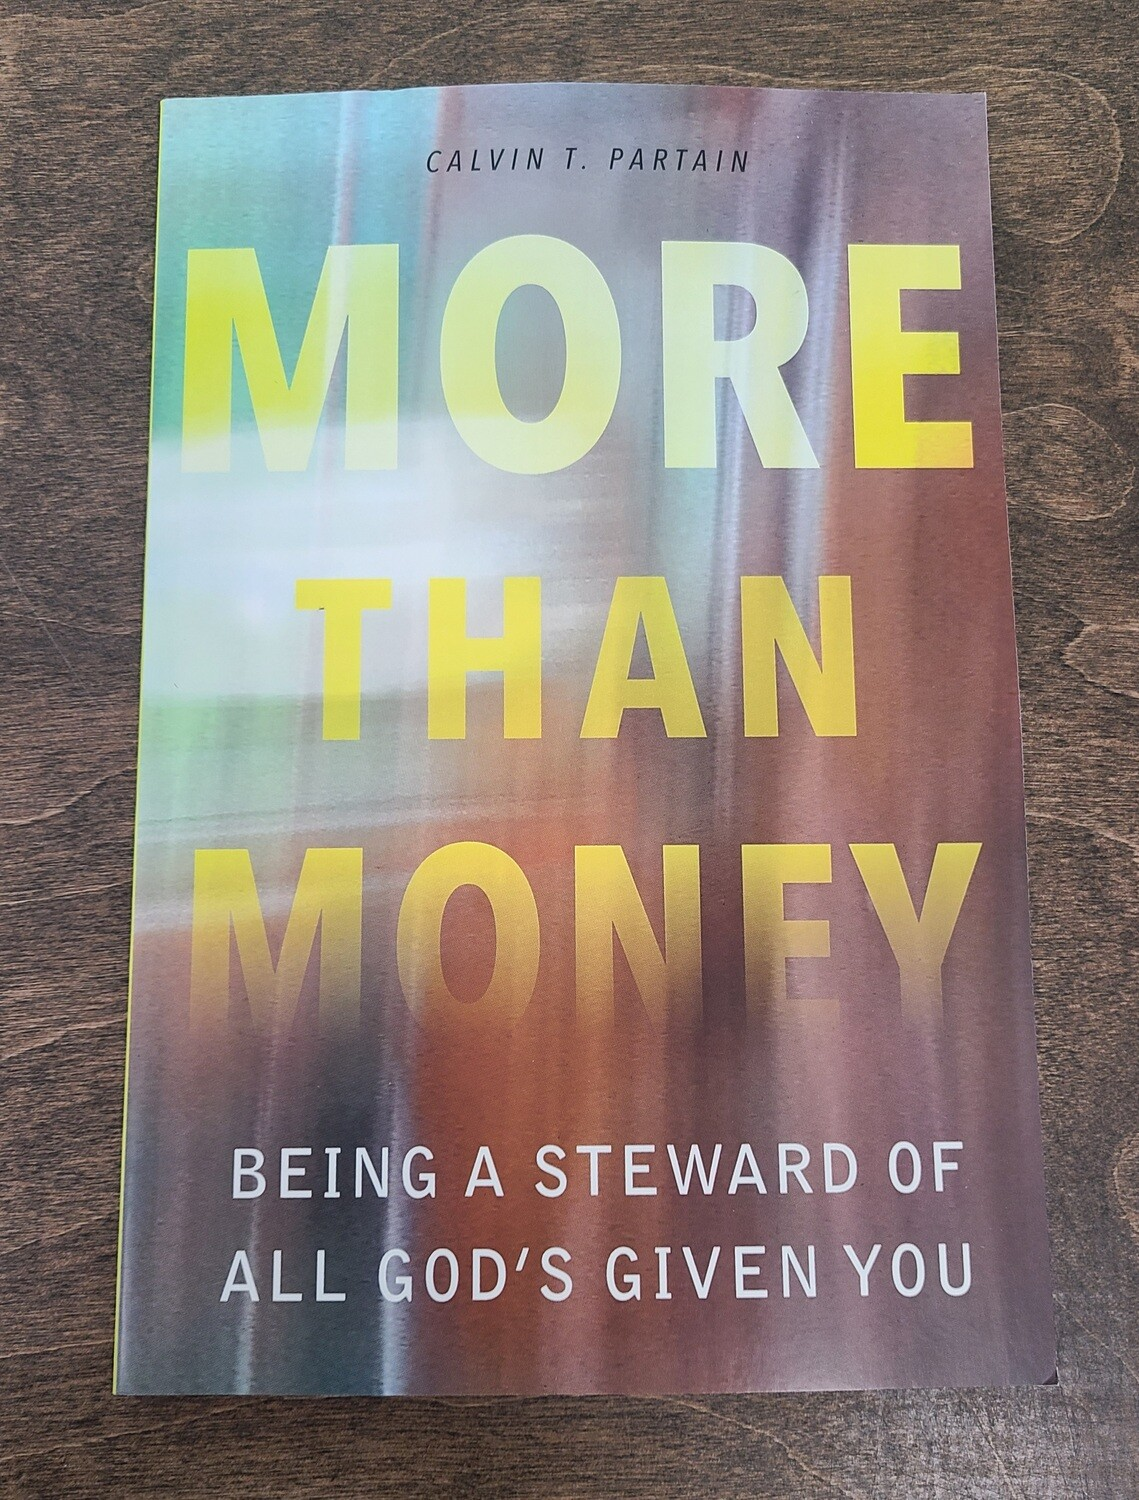 More Than Money: Being a Steward of All God's Given You by Calvin T. Partain